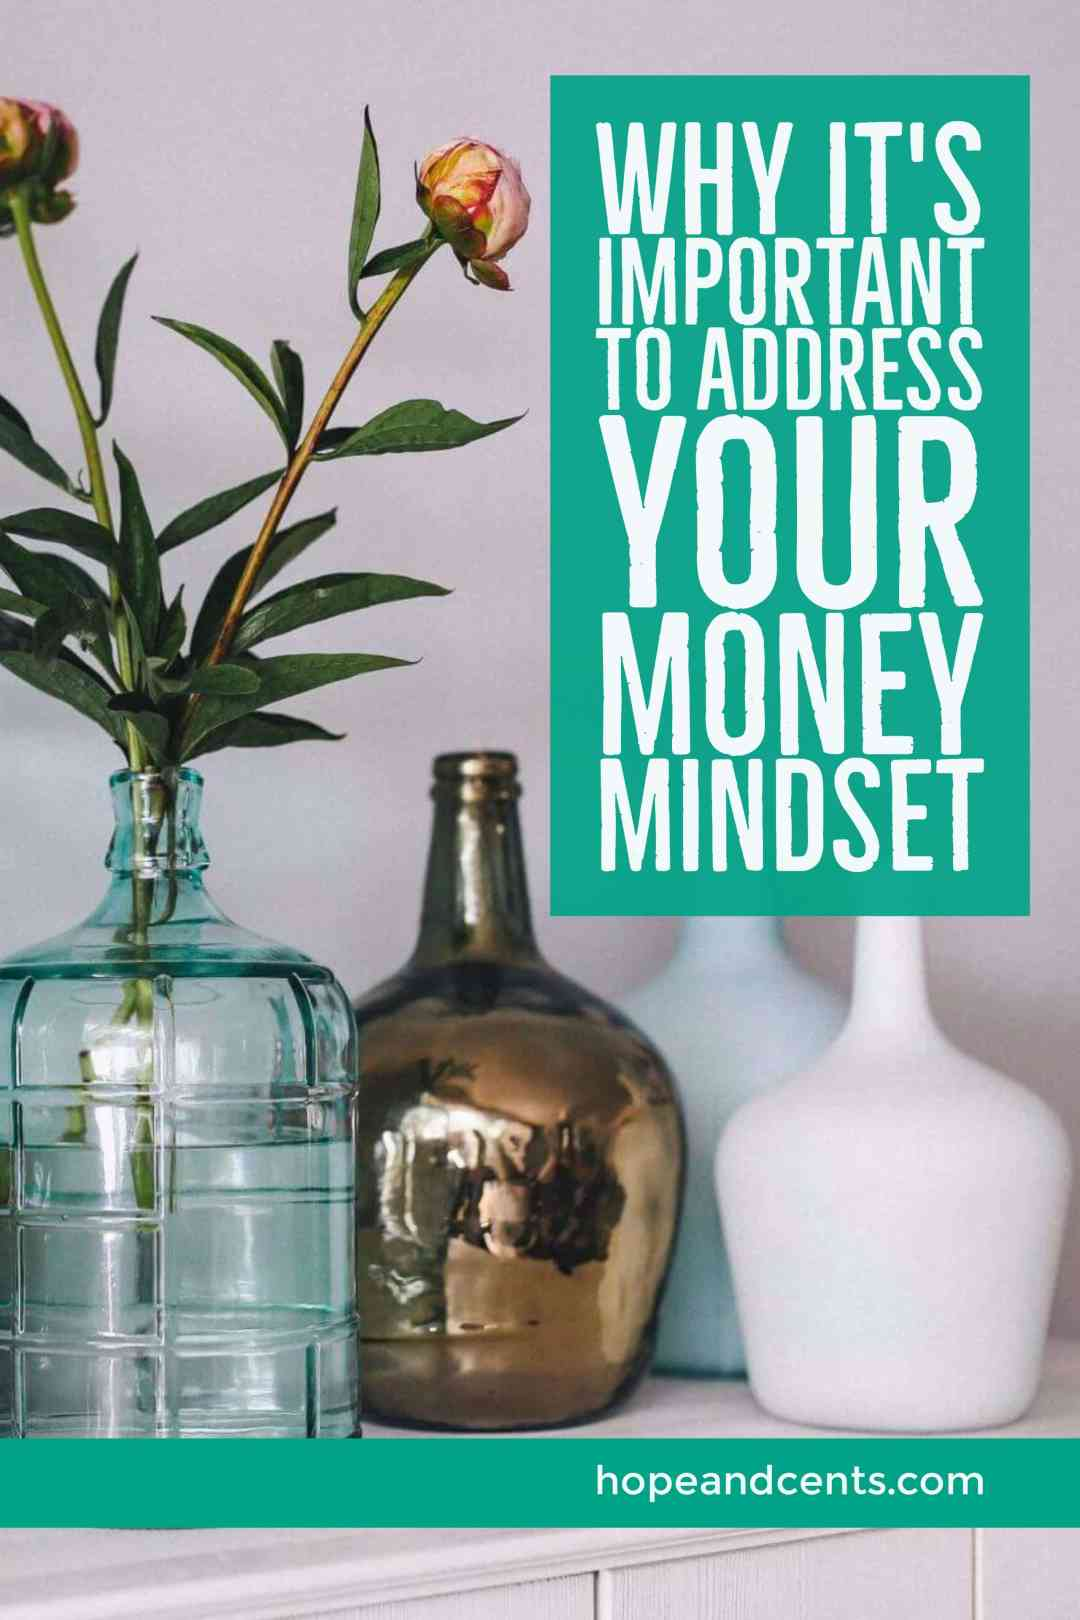 Why It's Important to Address Your Money Mindset